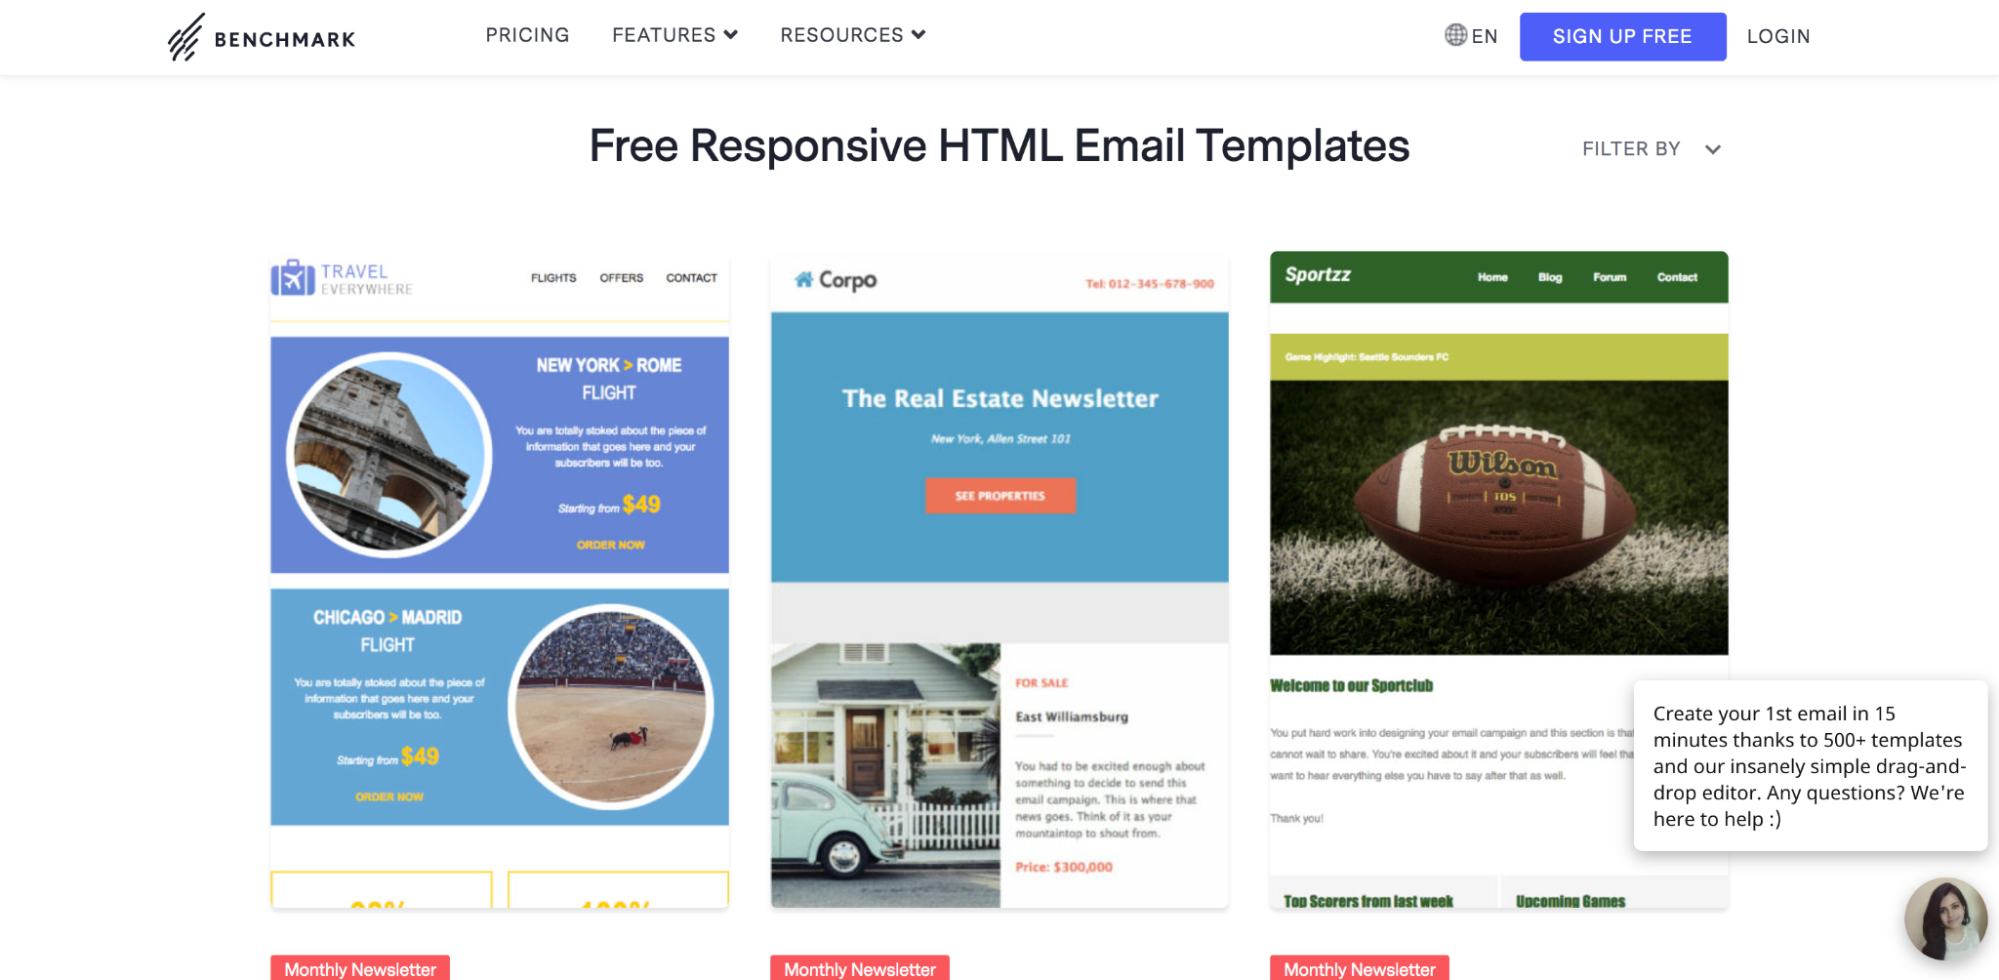 Benchmark email templates